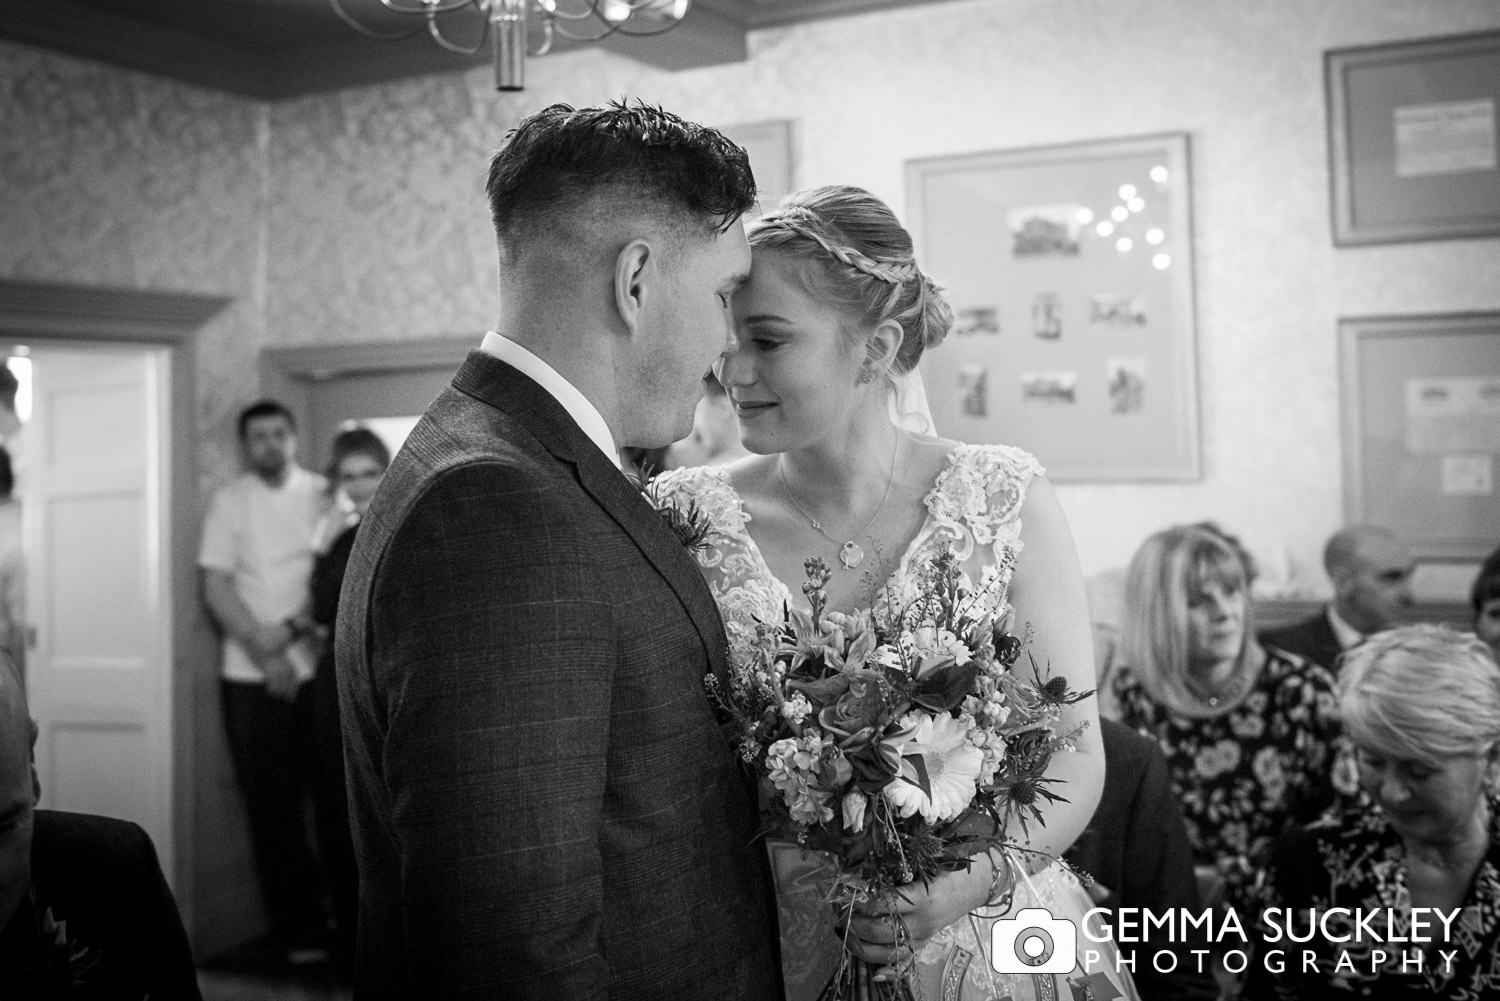 an intimate moment of a bride and groom during their ceremony at grassington house